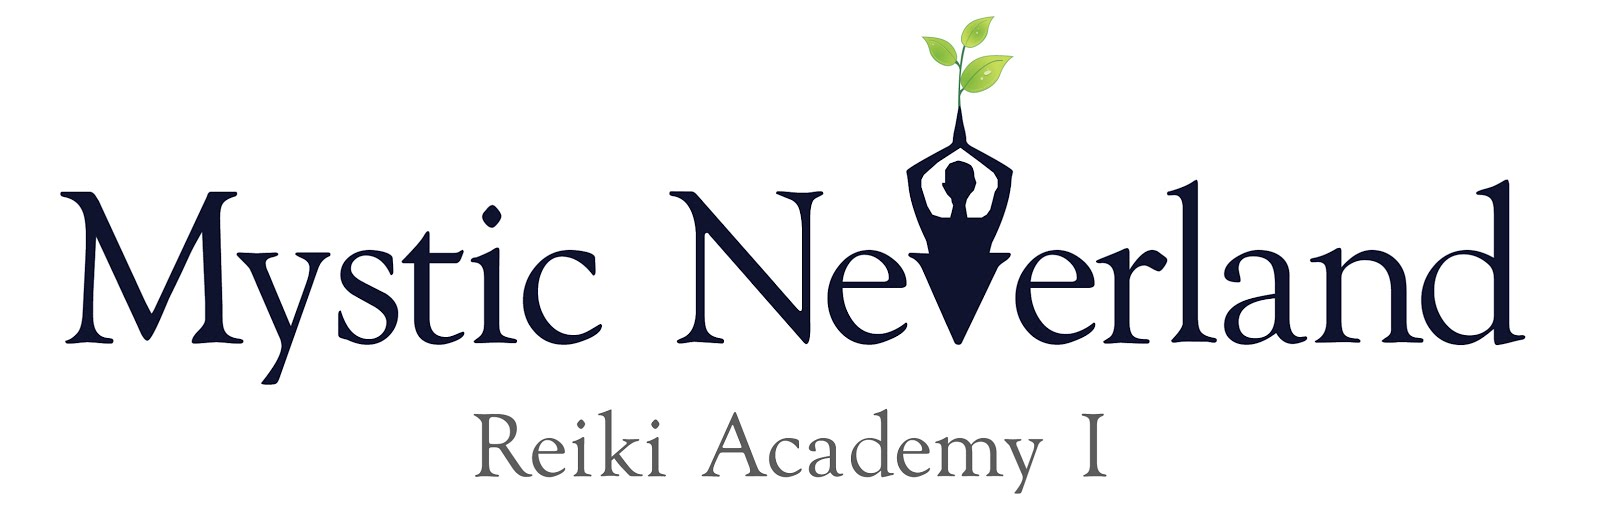 Mystic Neverland Reiki Academy Meditation & Health Center